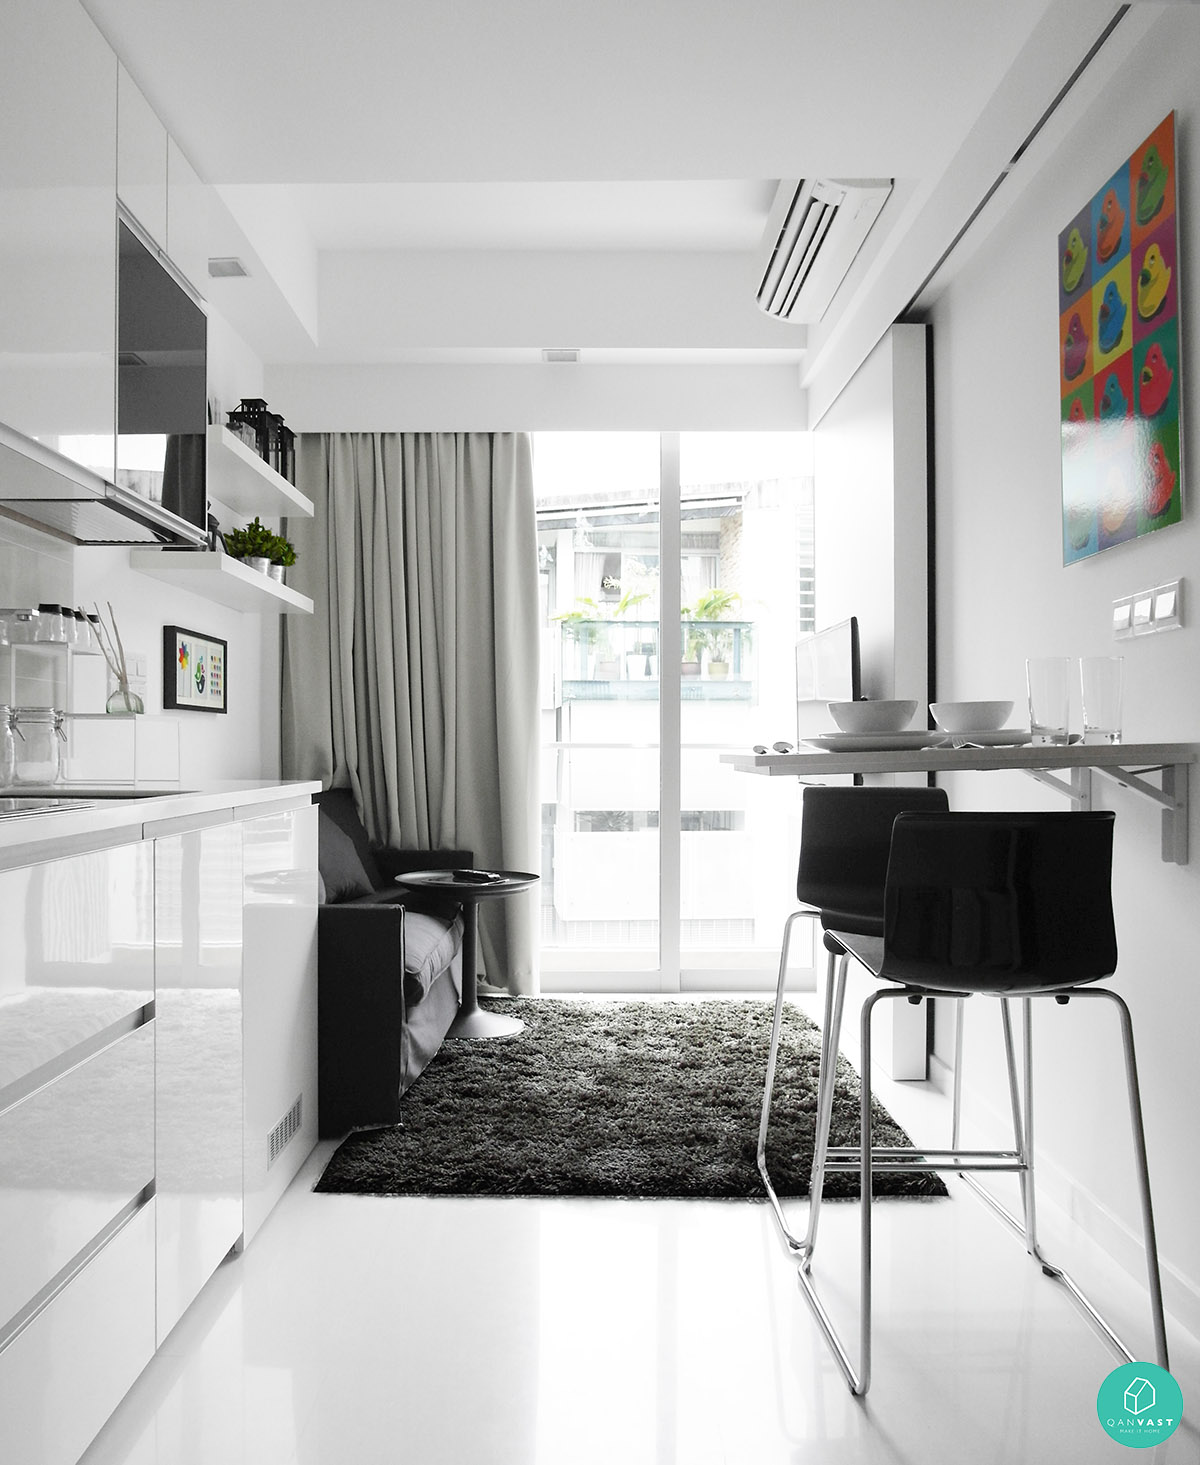 Home Design Ideas For Condos: Smart Designs For Small Spaces In Singapore Homes